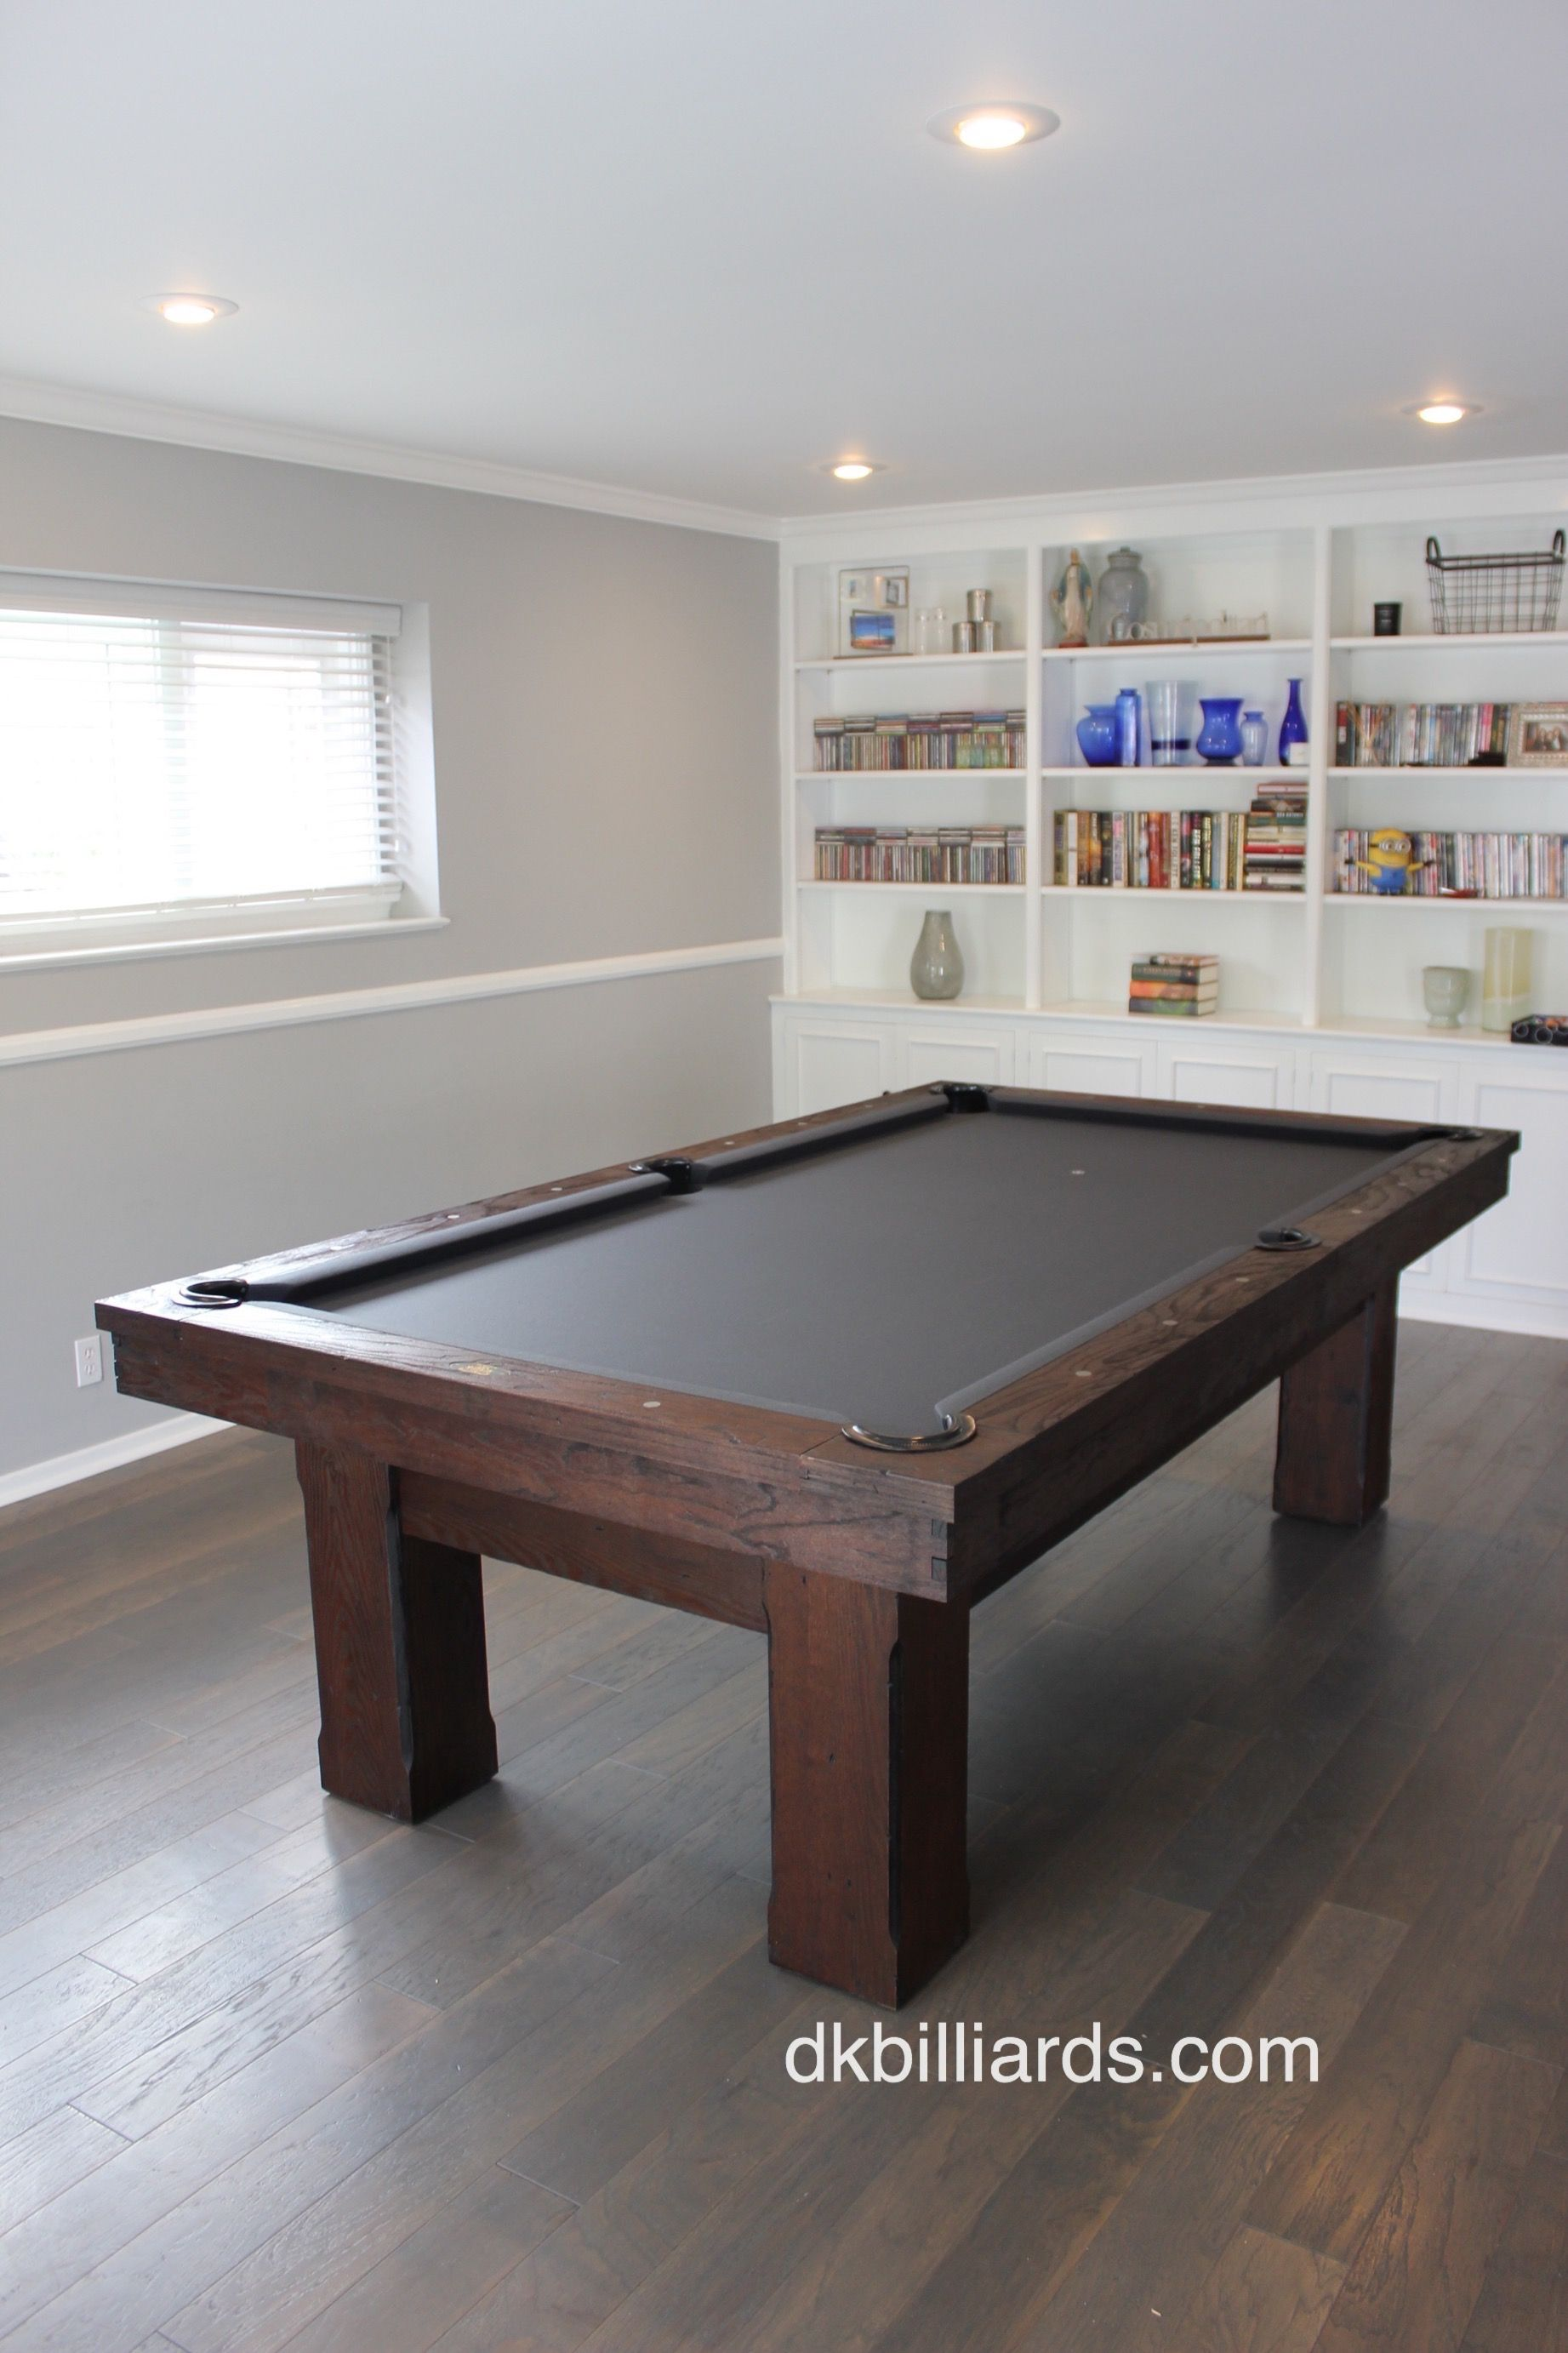 Floral Park Rustic Pool Table Pool Table Park And Floral - Pool table movers orange county